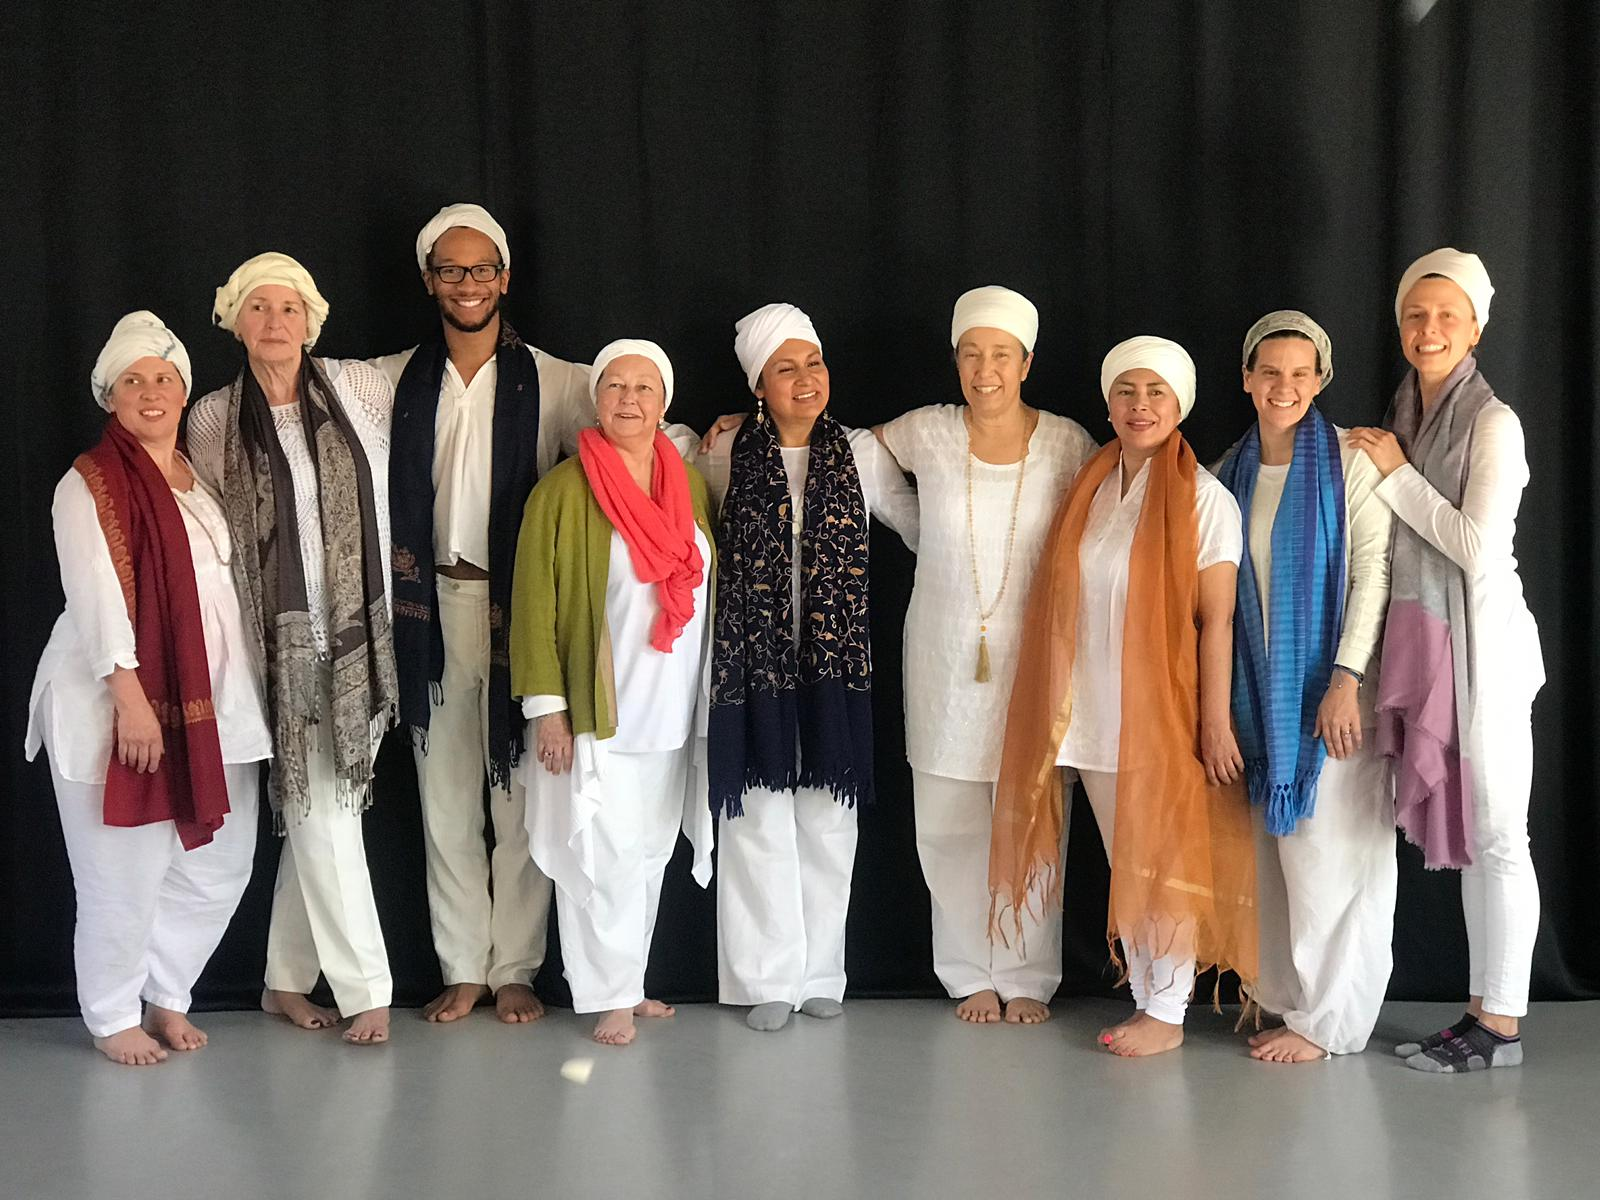 Kundalini Yoga Durham - Created by Keval Kaur Khalsa, this is Durham's first and only yoga studio dedicated solely to the practice of Kundalini Yoga. Monthly Aquarian Sadhana's and weekly classes are offered. A portion of all classes is donated to Y.O.G.A. for Youth.